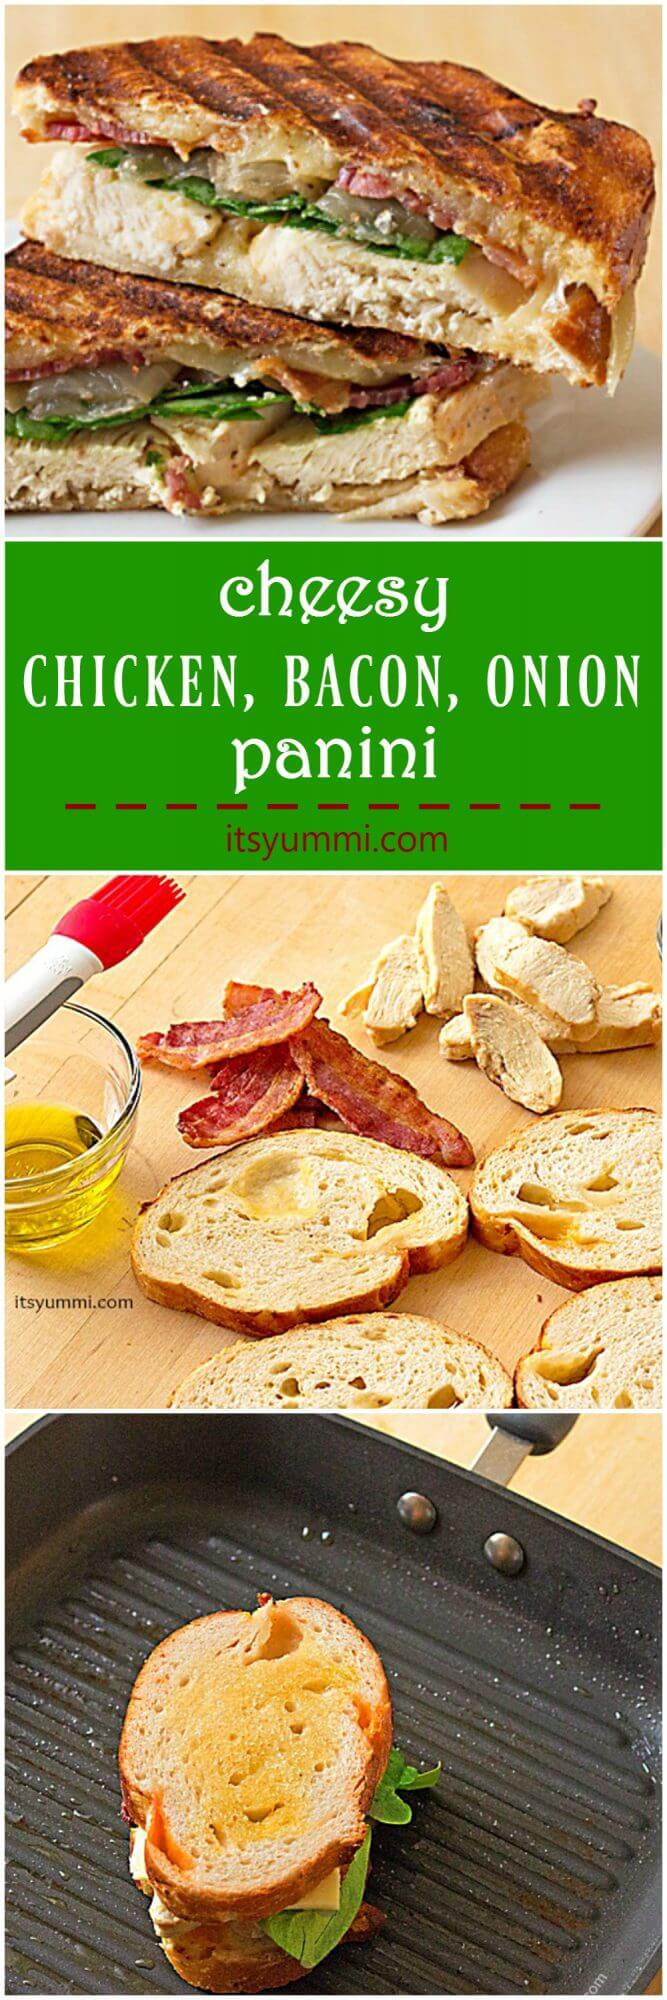 grilled chicken bacon onion panini sandwich its yummi cheesy grilled chicken panini sandwich crispy bacon caramelized onions baby spinach and